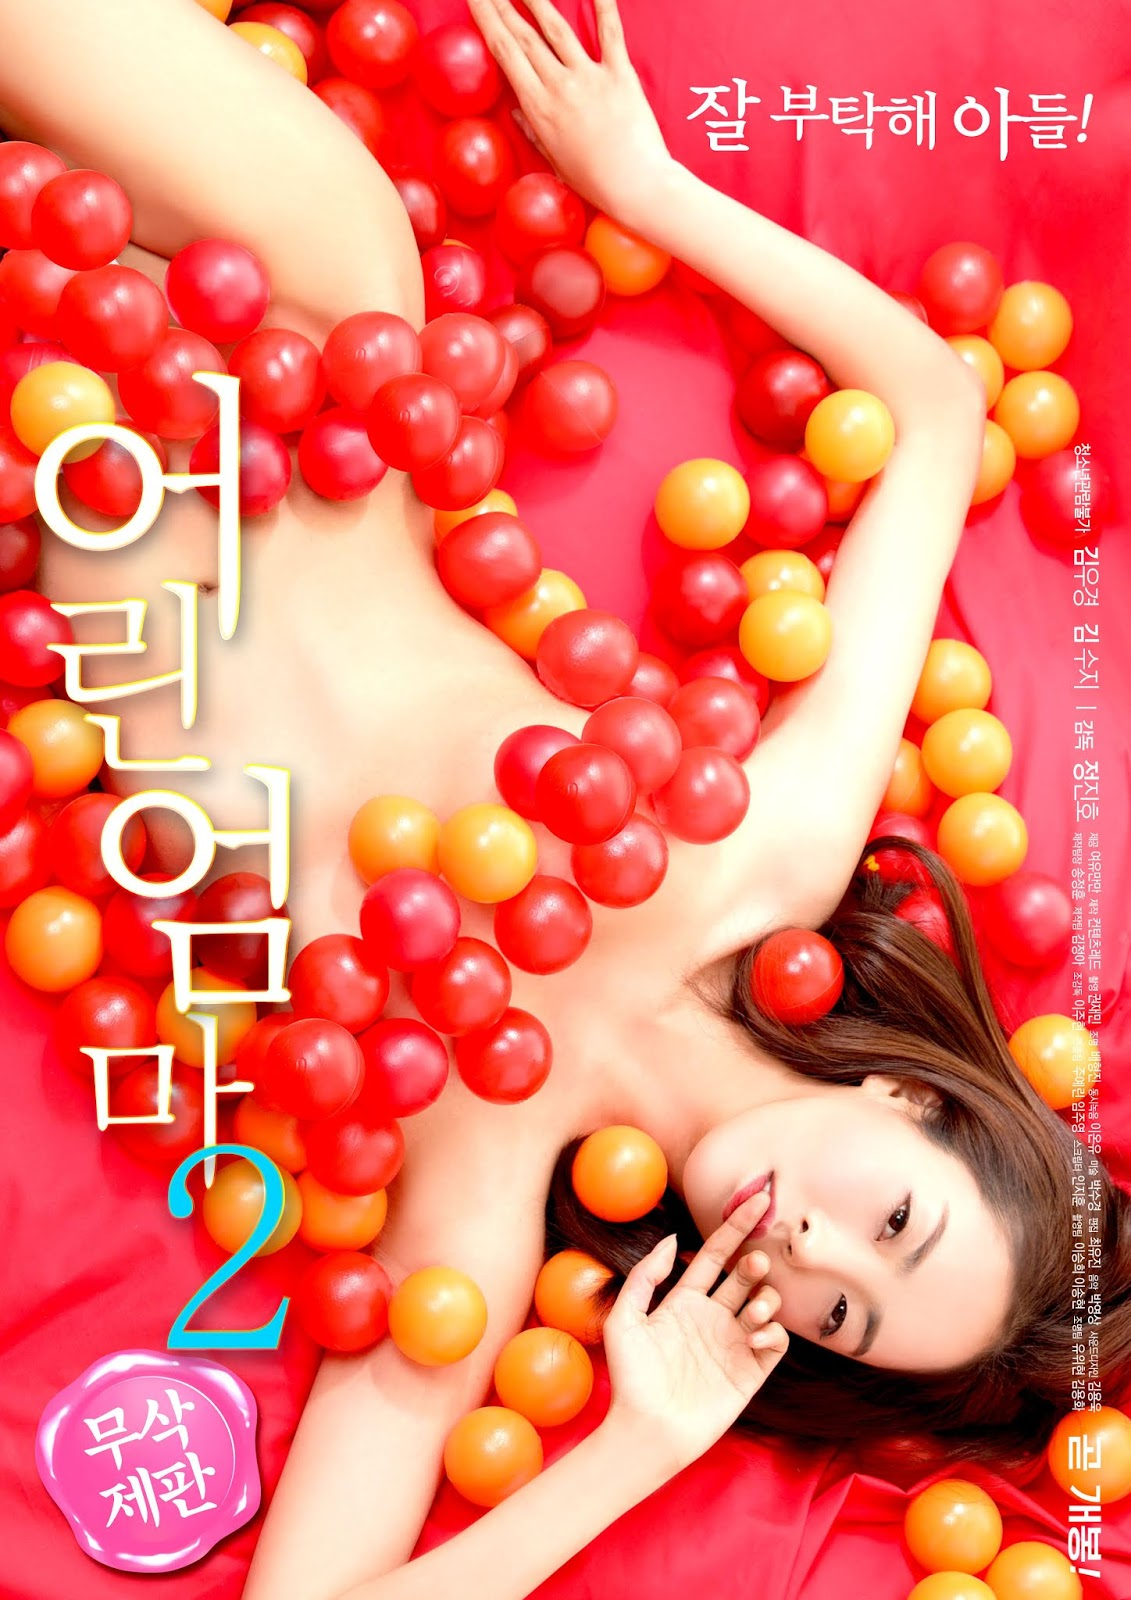 Young Mom 2 Full Korea 18+ Adult Movie Online Free